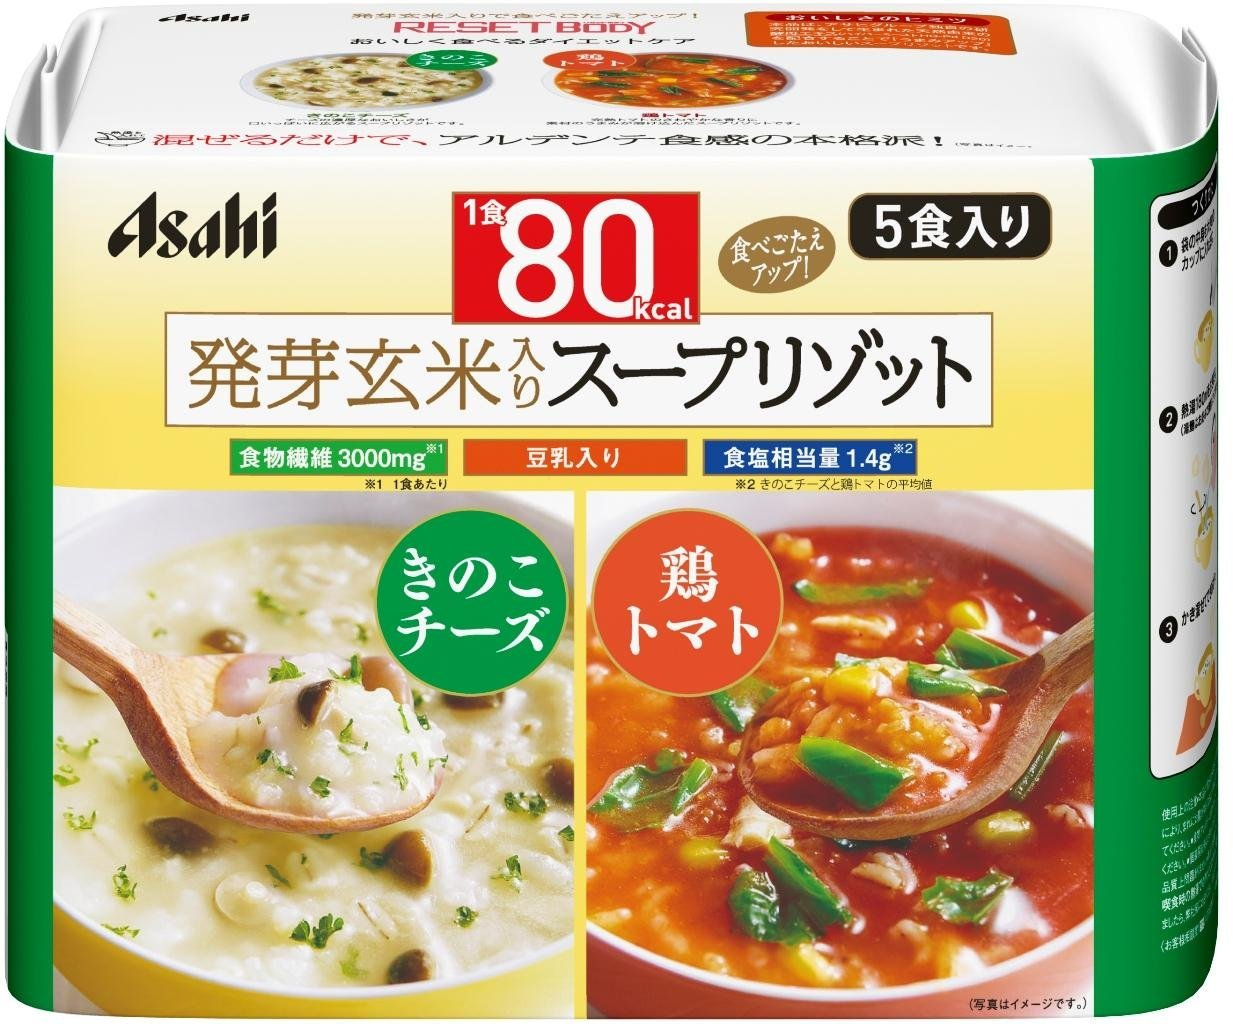 Cheese & Mushroom Soy Body Set Reset Tomatosupurizotto five meals chicken